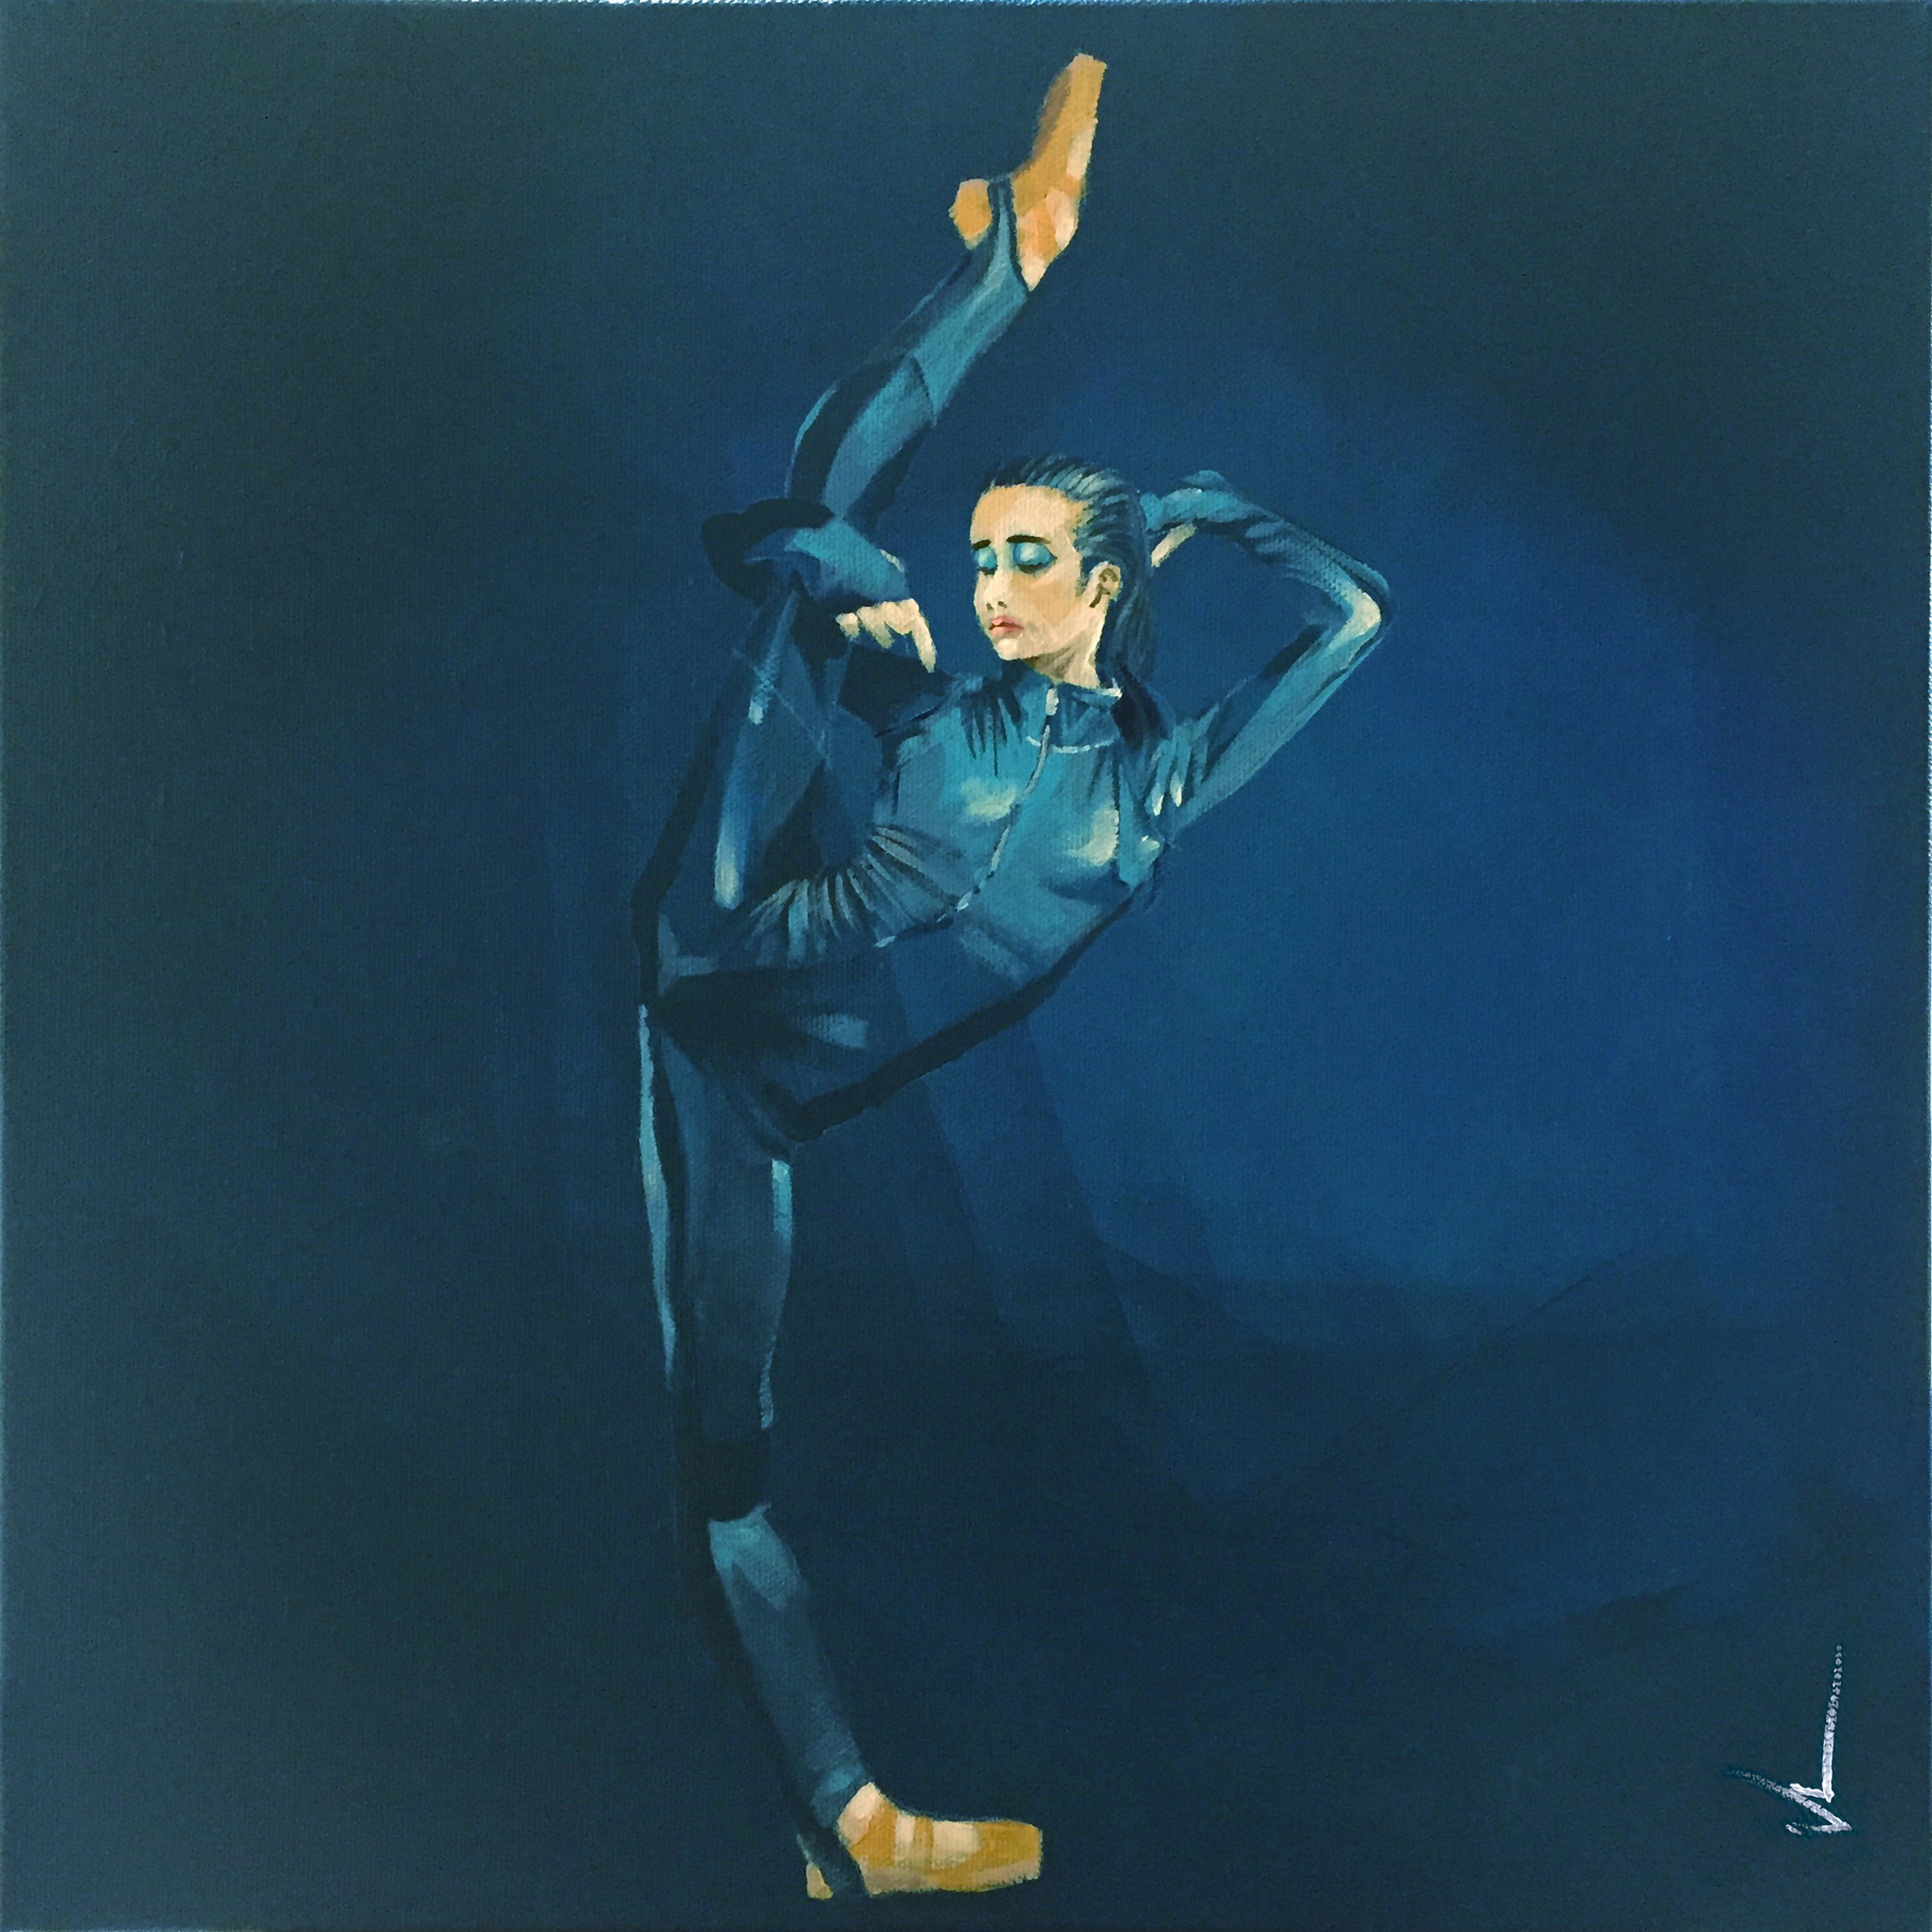 3_Dancer_In_The_Blue_40x40_Acrylic_2020